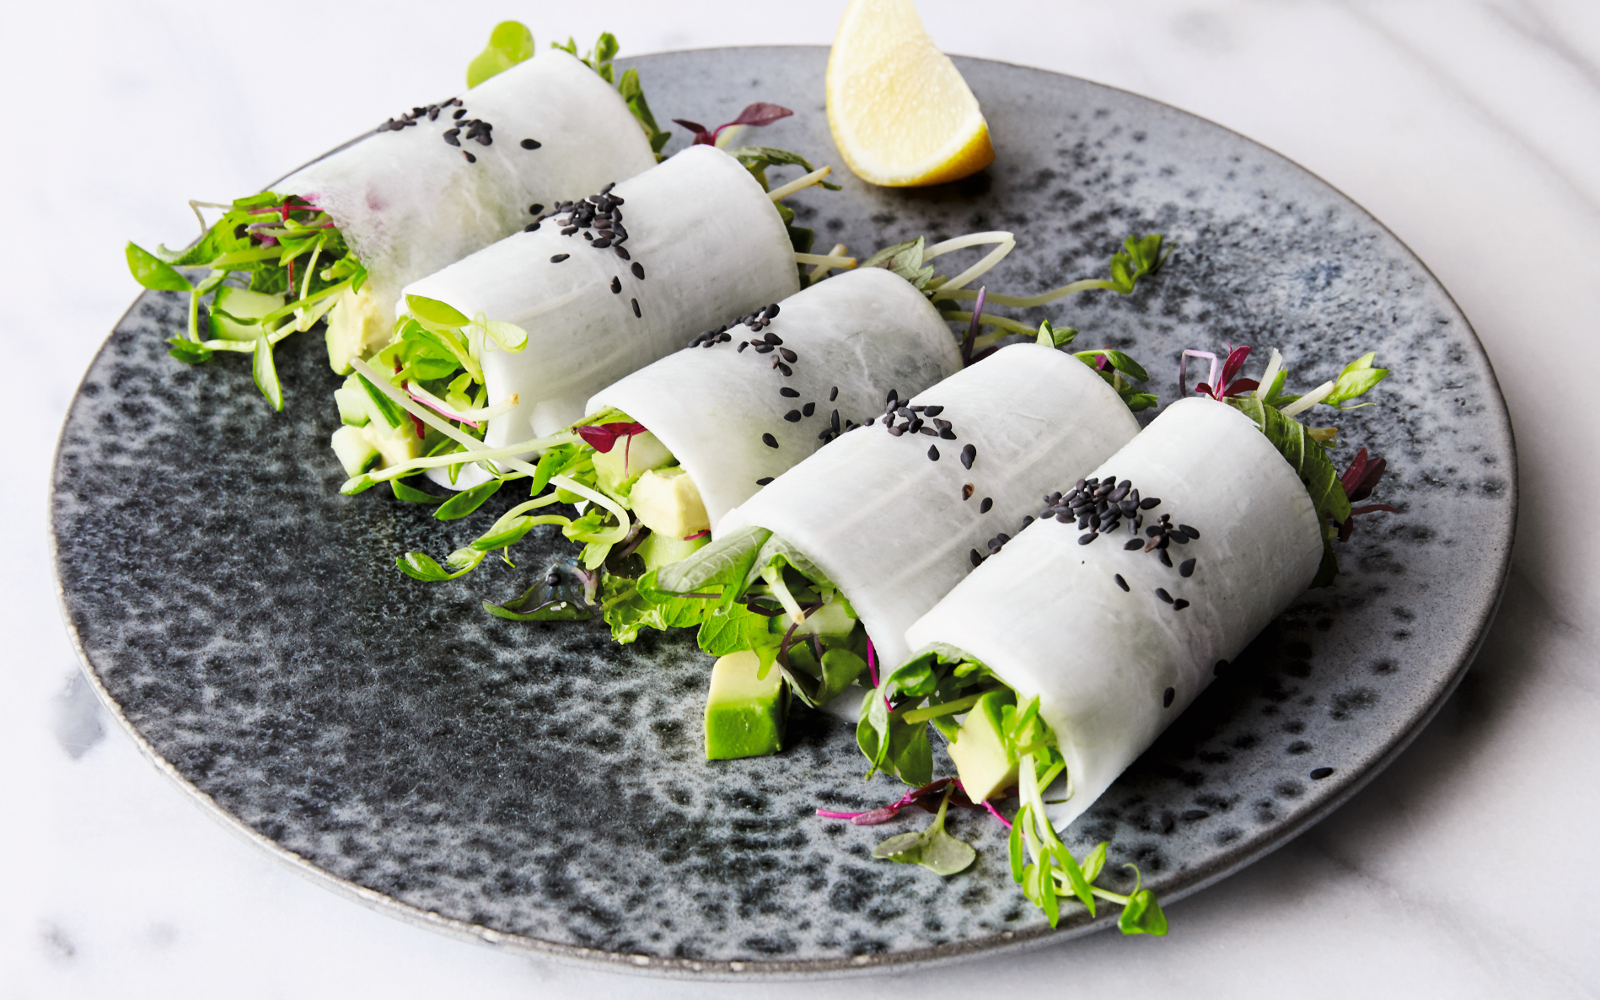 Summer Daikon Rolls With Avocado and Micro Greens